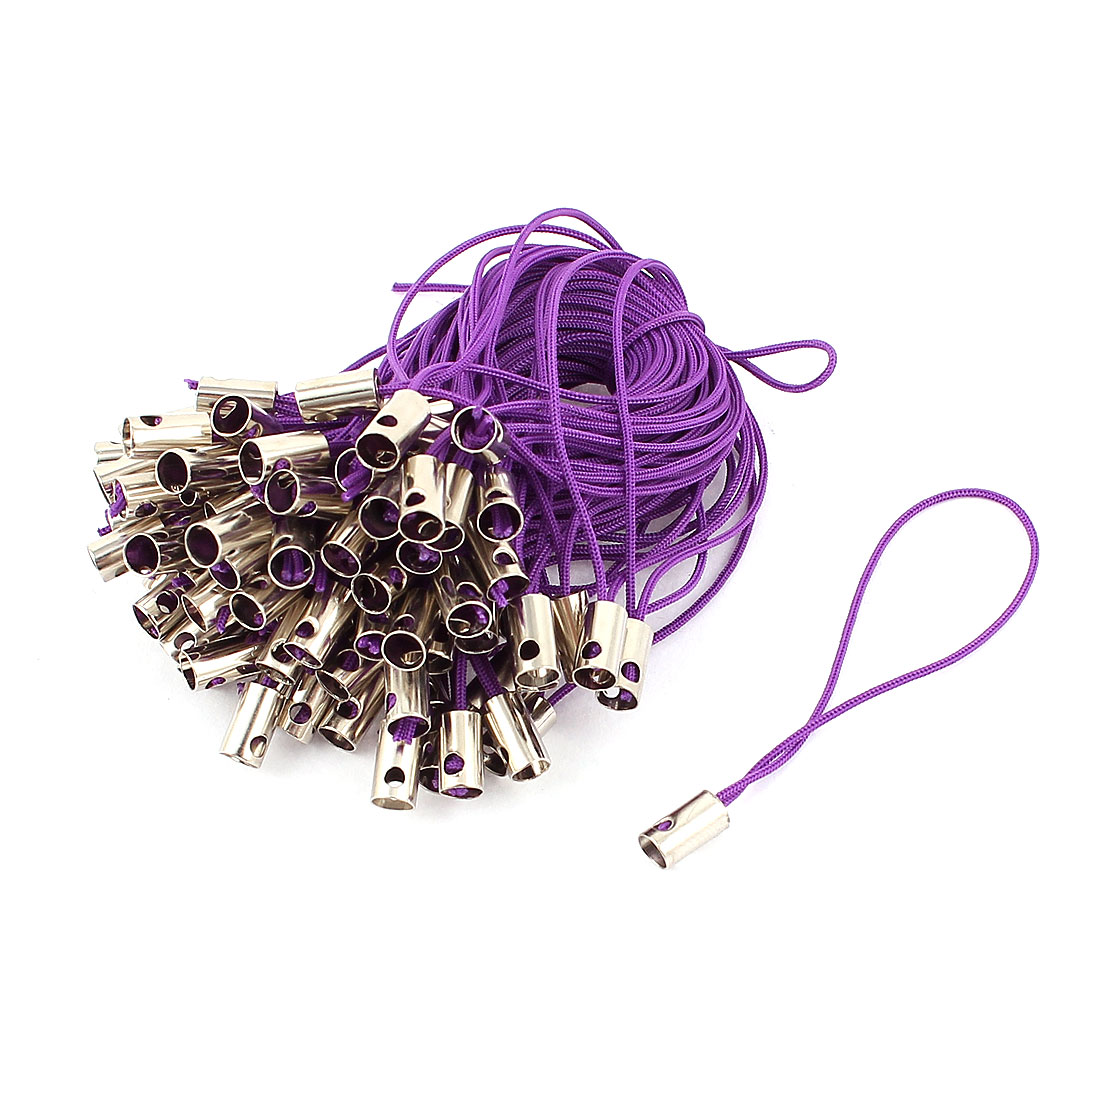 100 Pcs Purple Nylon Strap Lanyard 6cm for MP3 MP4 Camera Mobile Phone